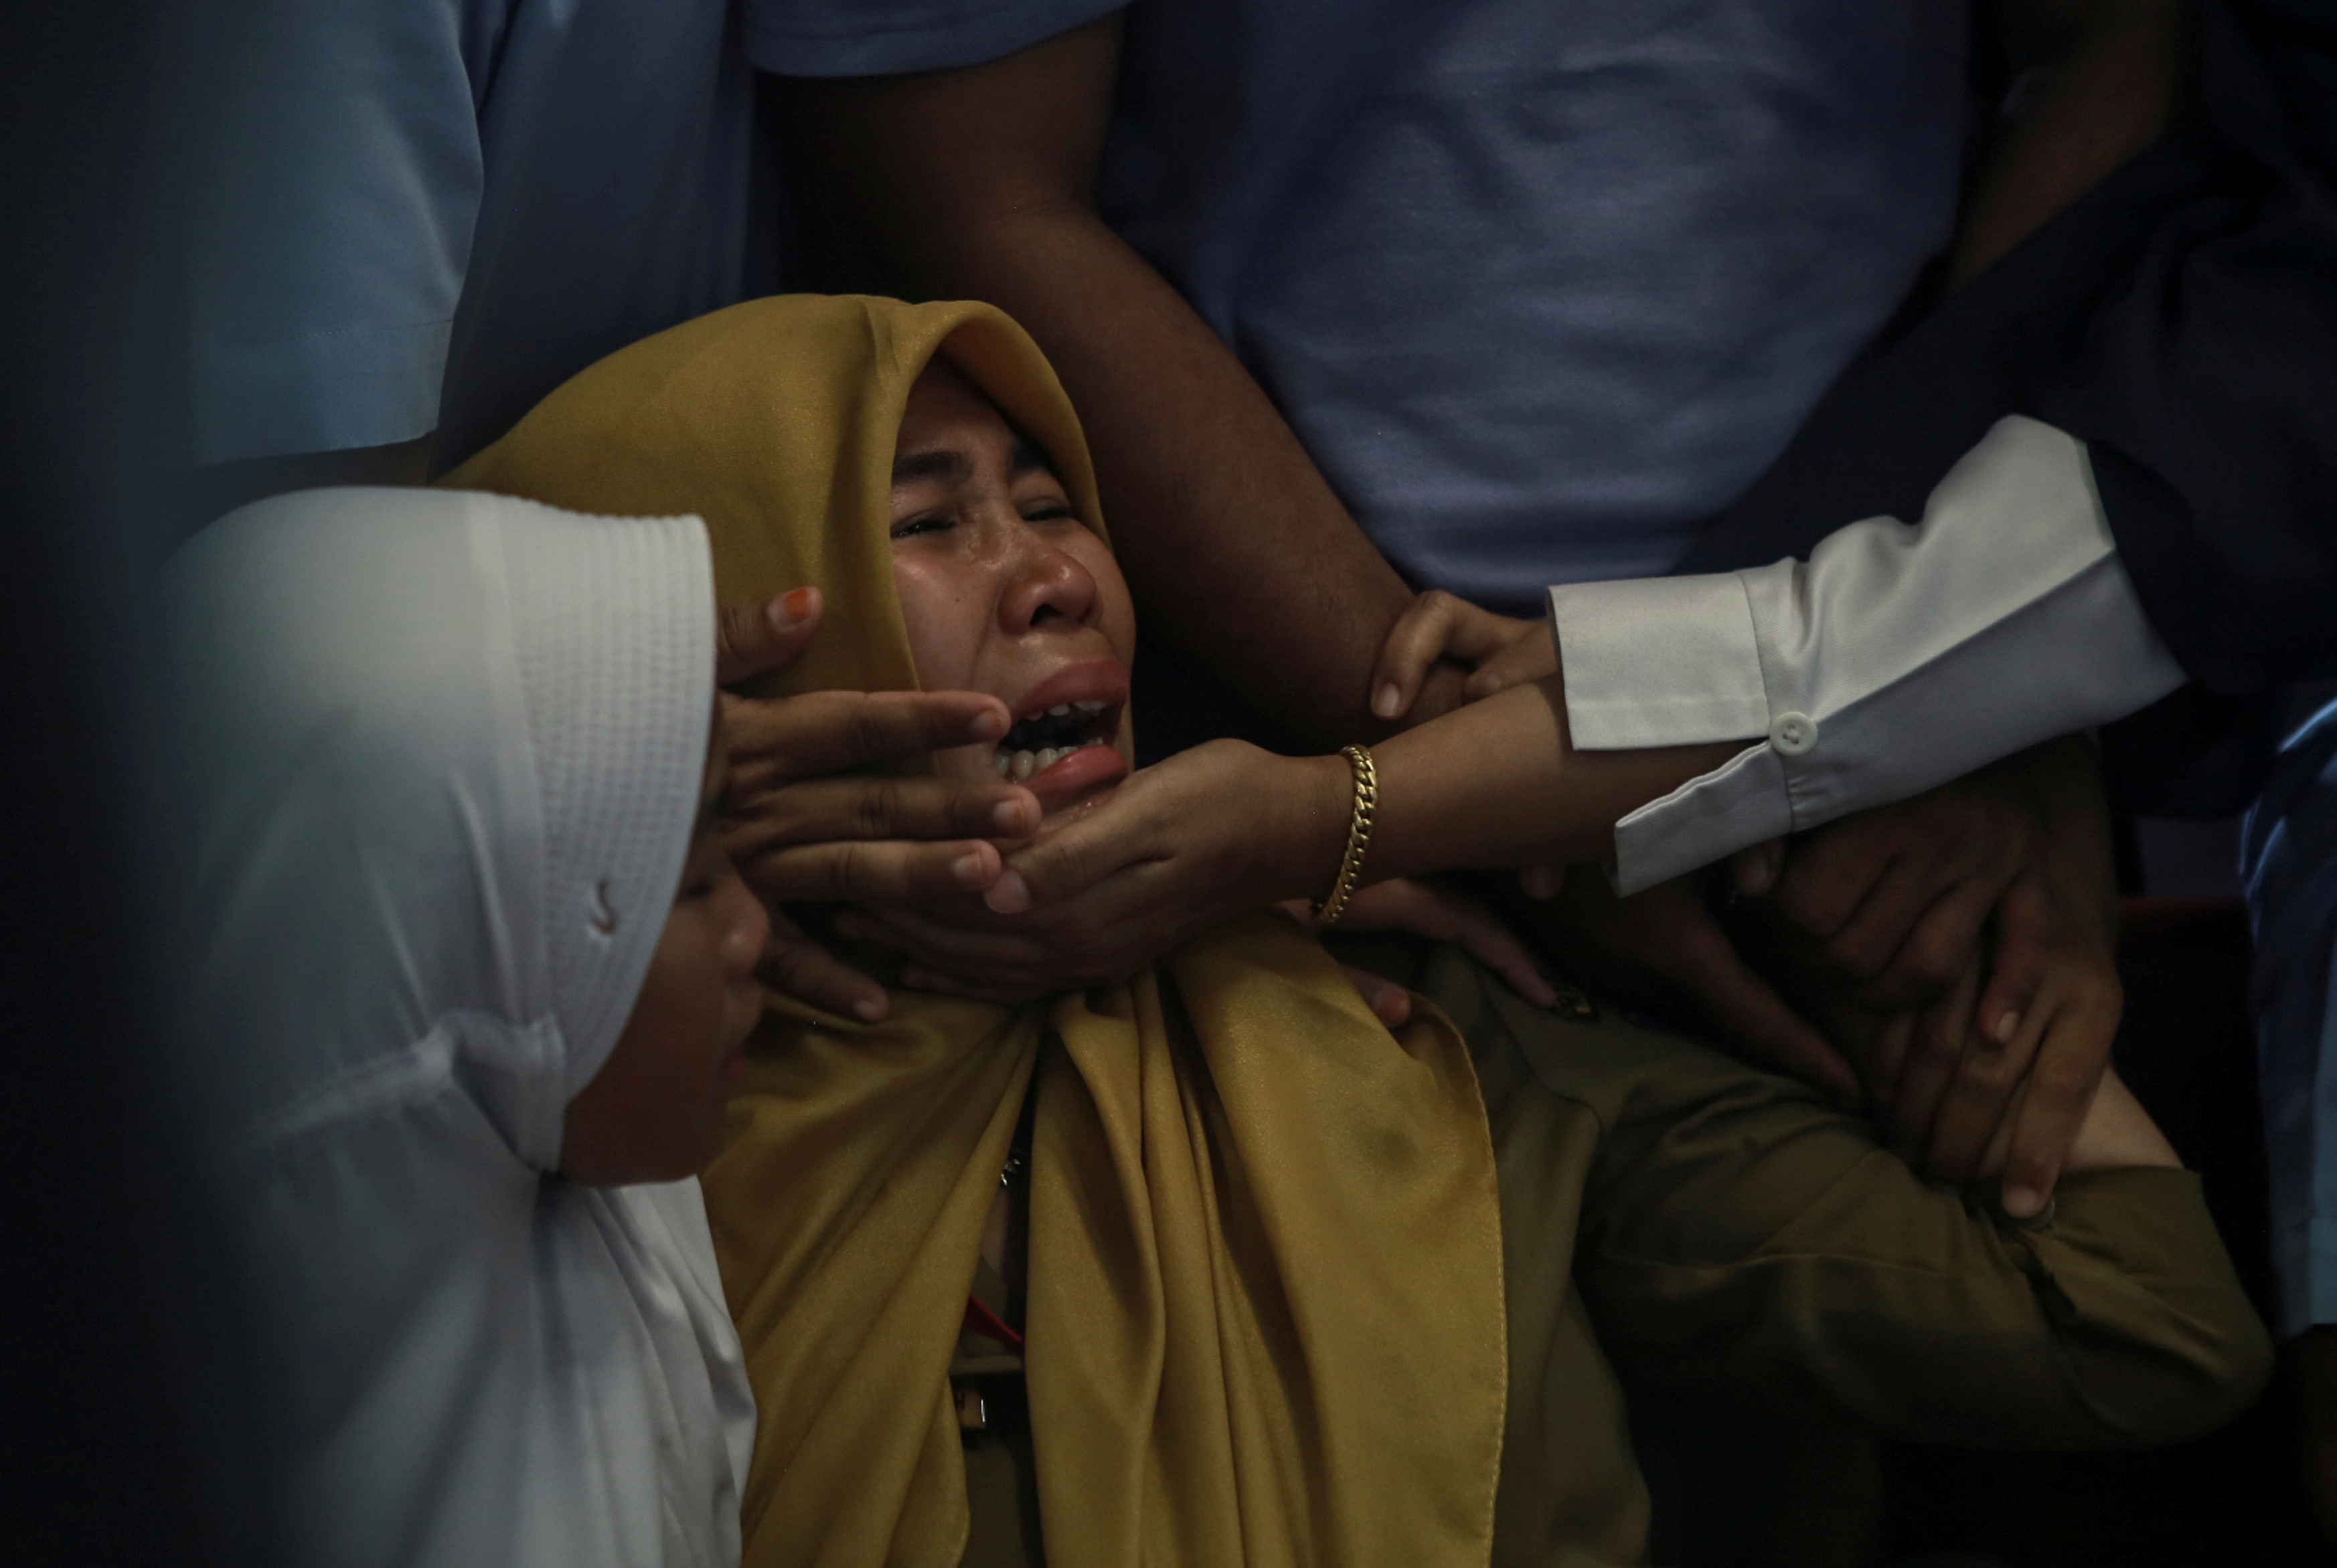 Relatives of passengers of Lion Air, flight JT610, that crashed into the sea cry at Depati Amir Airport in Pangkal Pinang, Belitung island, Indonesia, October 29, 2018. Antara Foto/Hadi Sutrisno via REUTERS